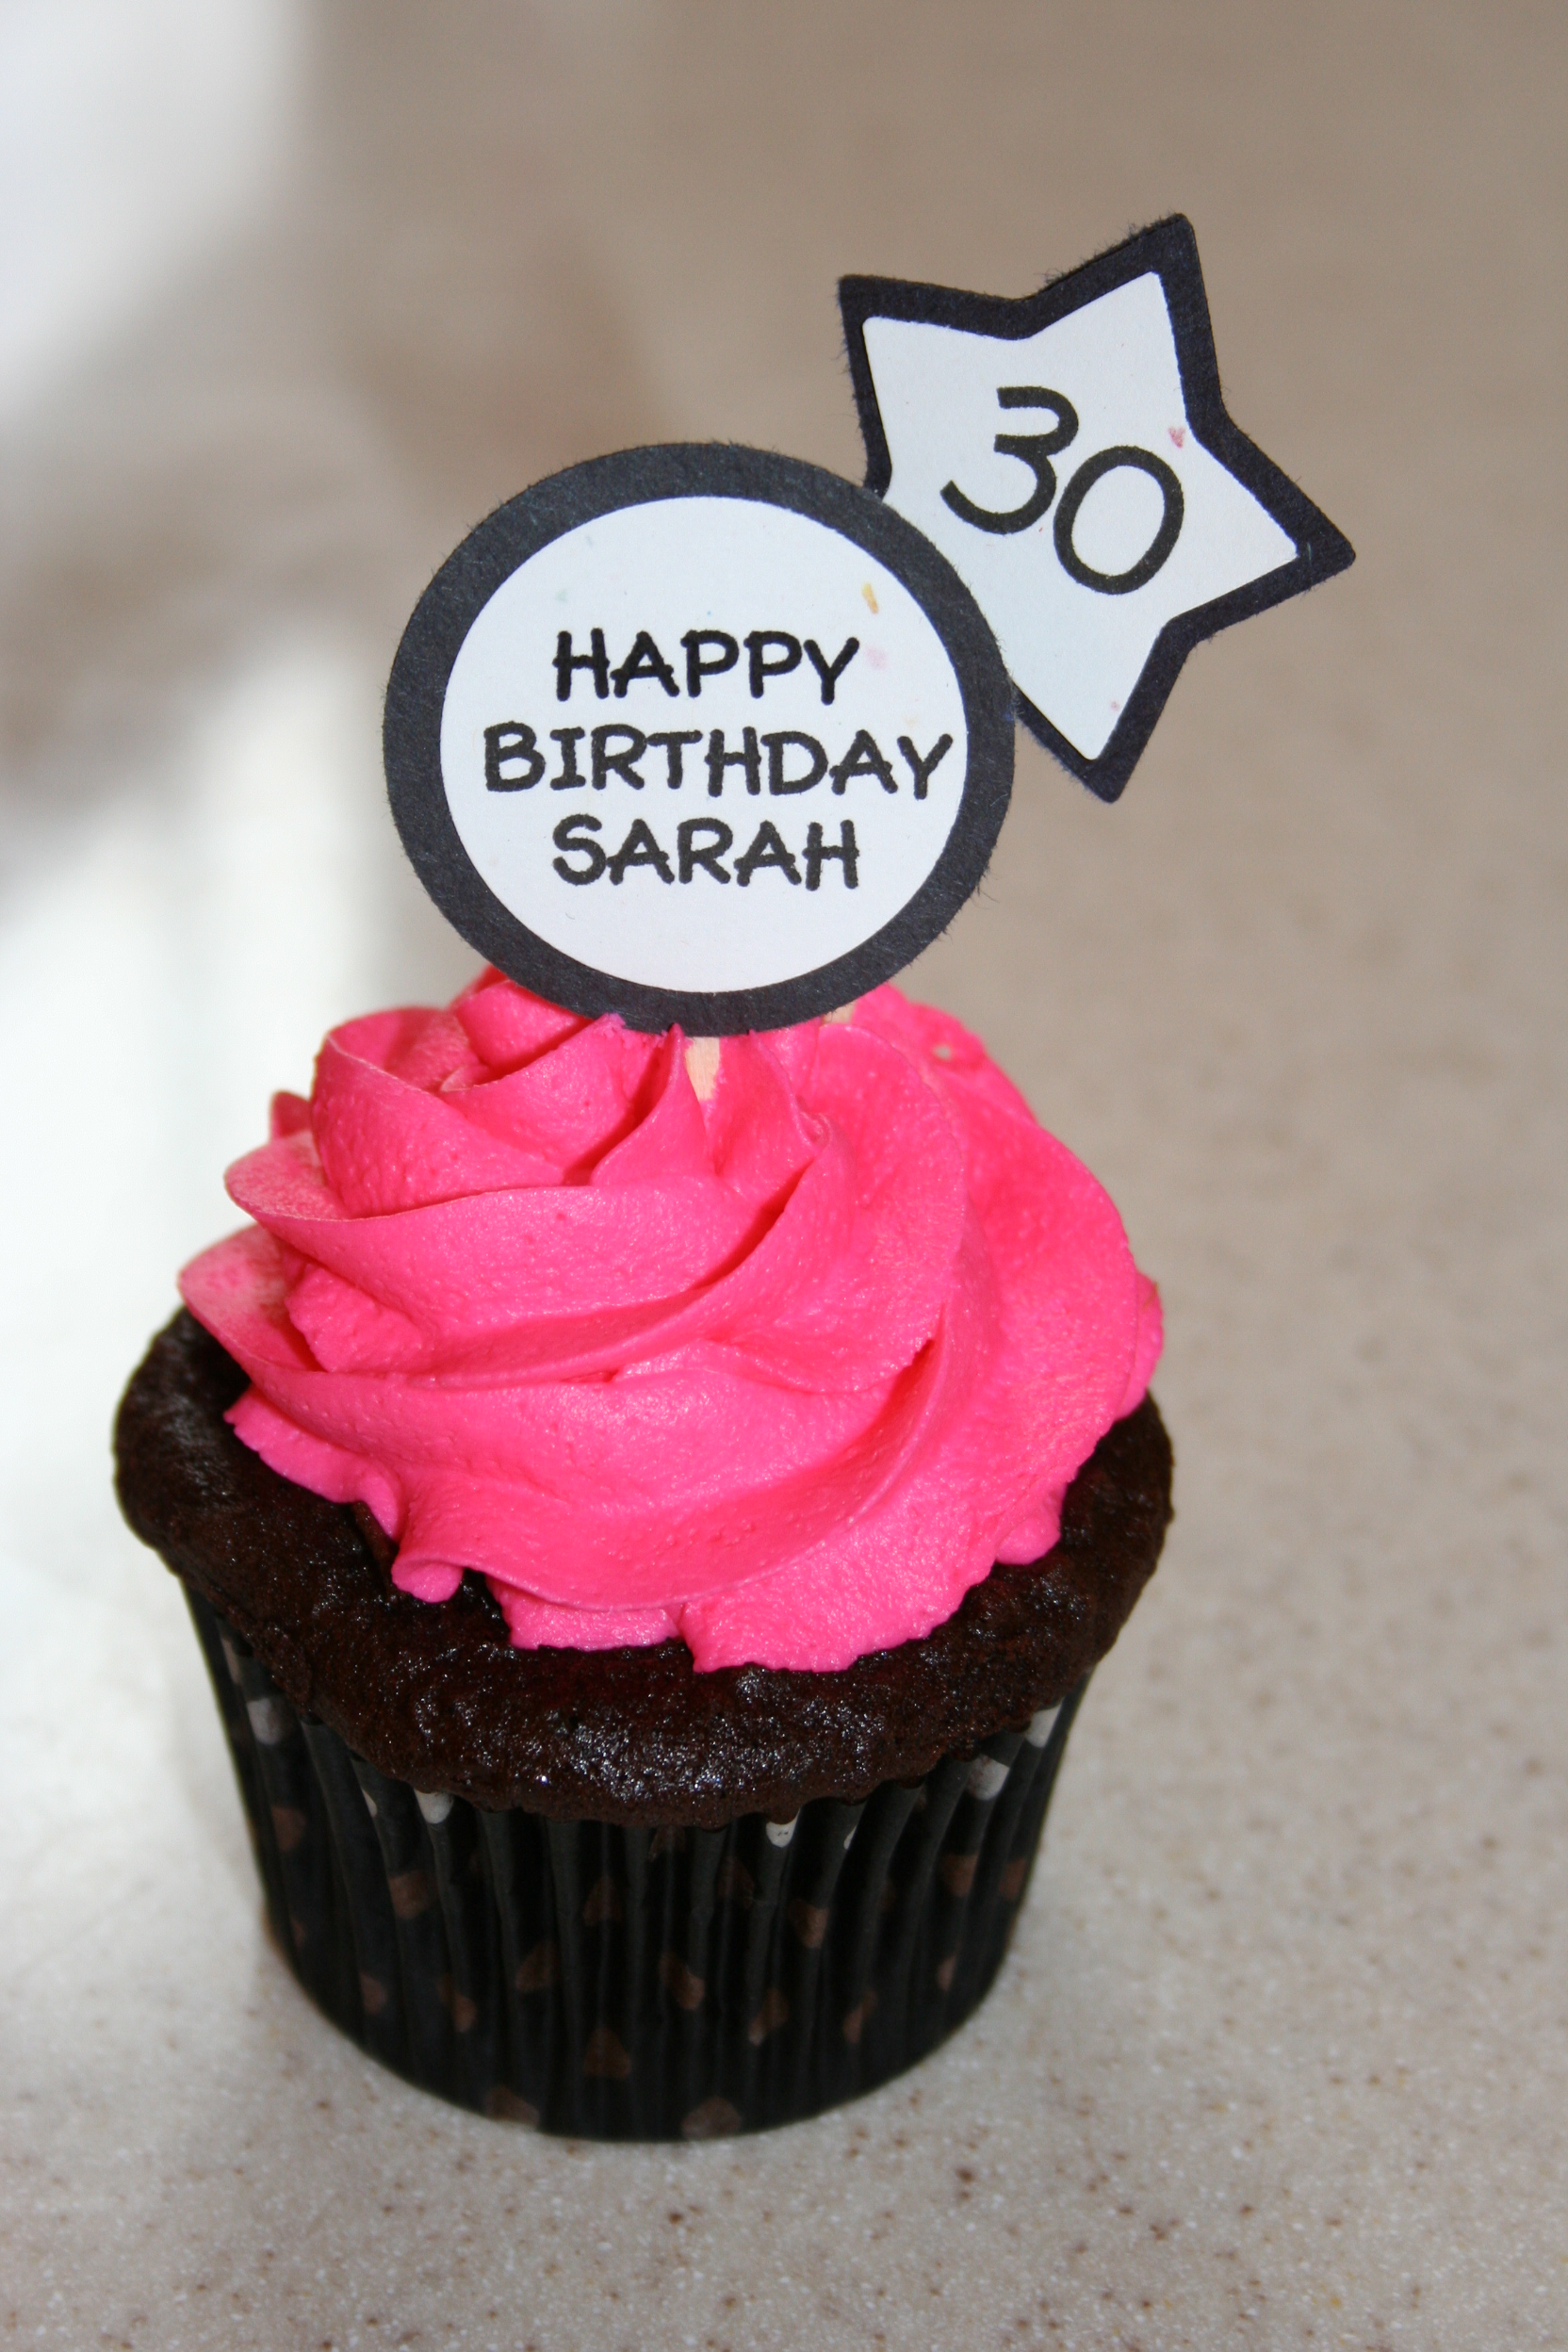 Happy 30th Birthday Sarah The Perkiomen Cupcake Company